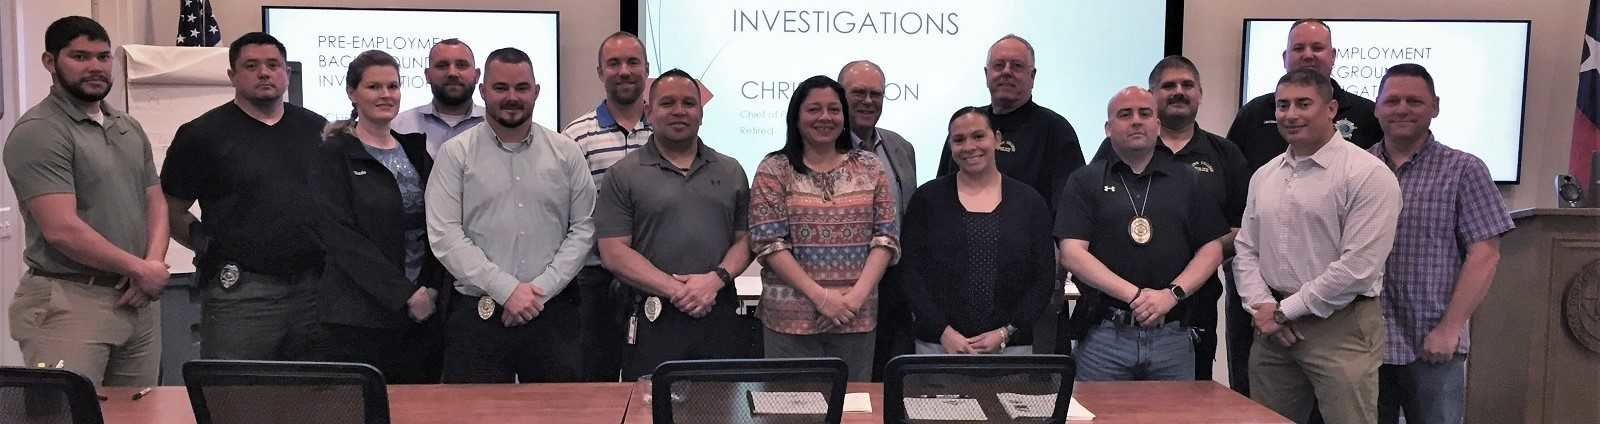 Trainees at the TPCA Pre-Employment Background Investigations Training Class